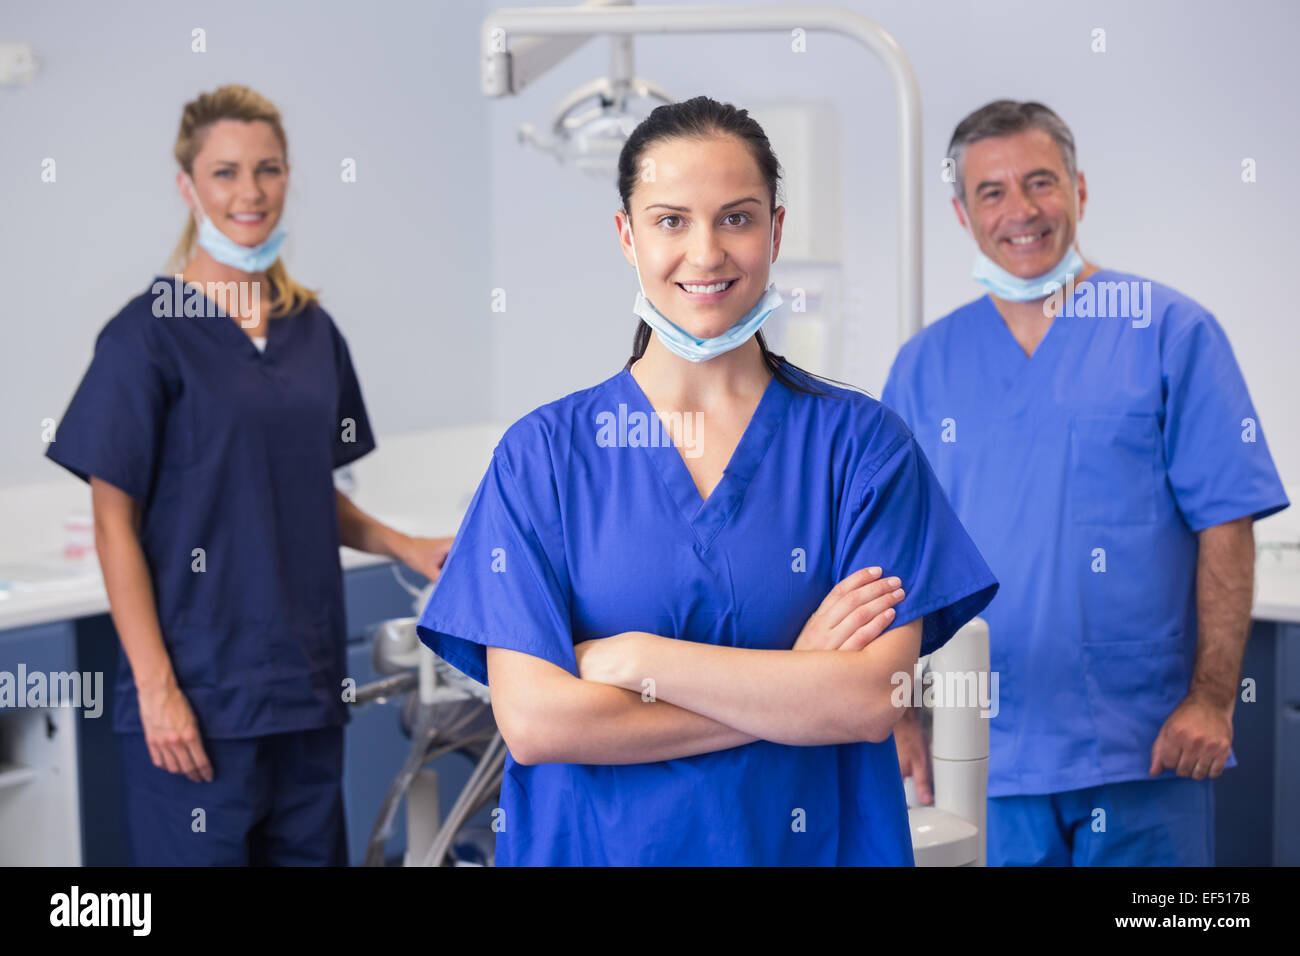 Portrait of smiling co-workers standing - Stock Image